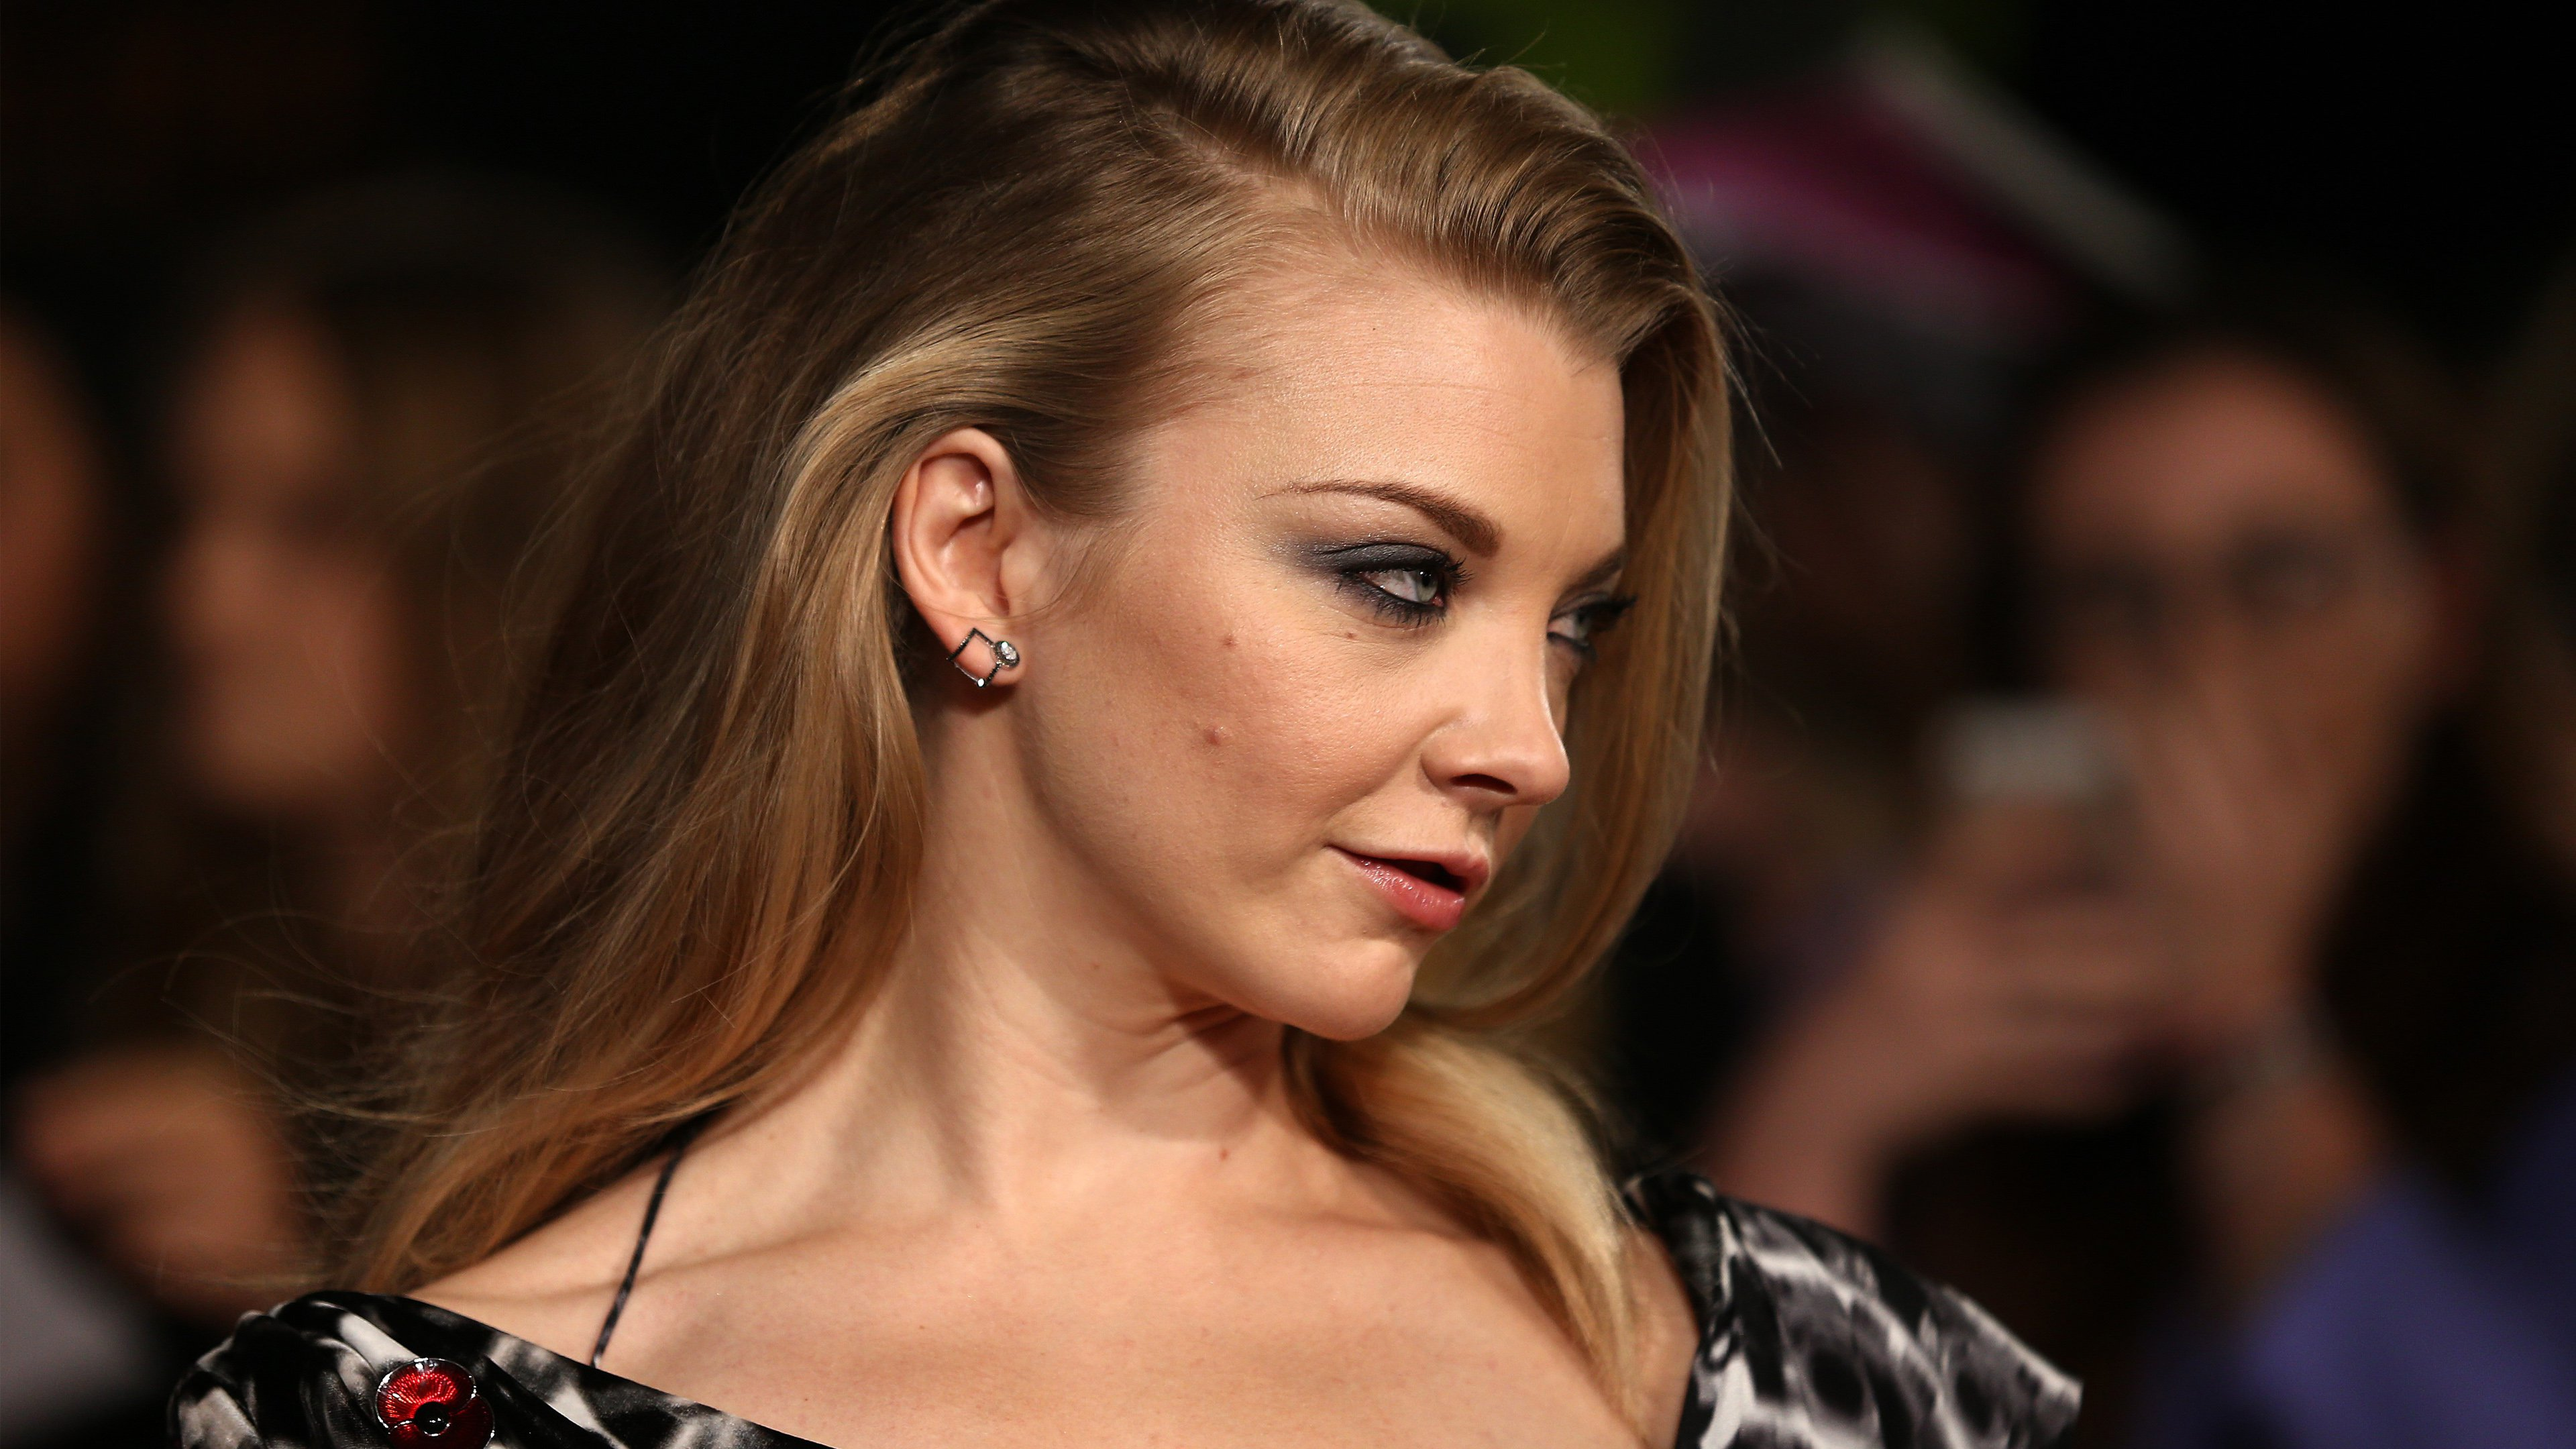 natalie dormer 2016 1536856676 - Natalie Dormer 2016 - natalie dormer wallpapers, girls wallpapers, celebrities wallpapers